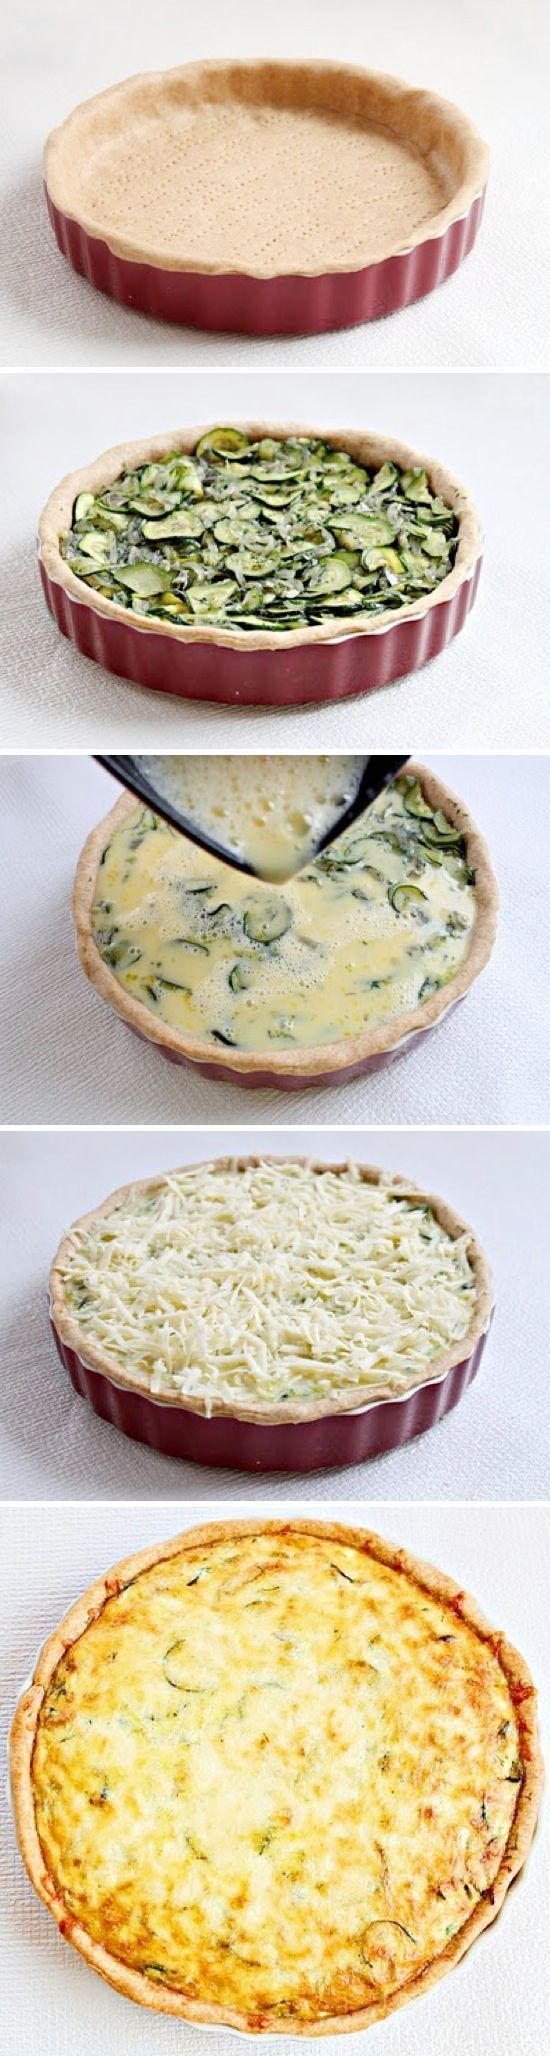 How To Make Super Zucchini Quiche - delicious, dinner, food recipe, recipes